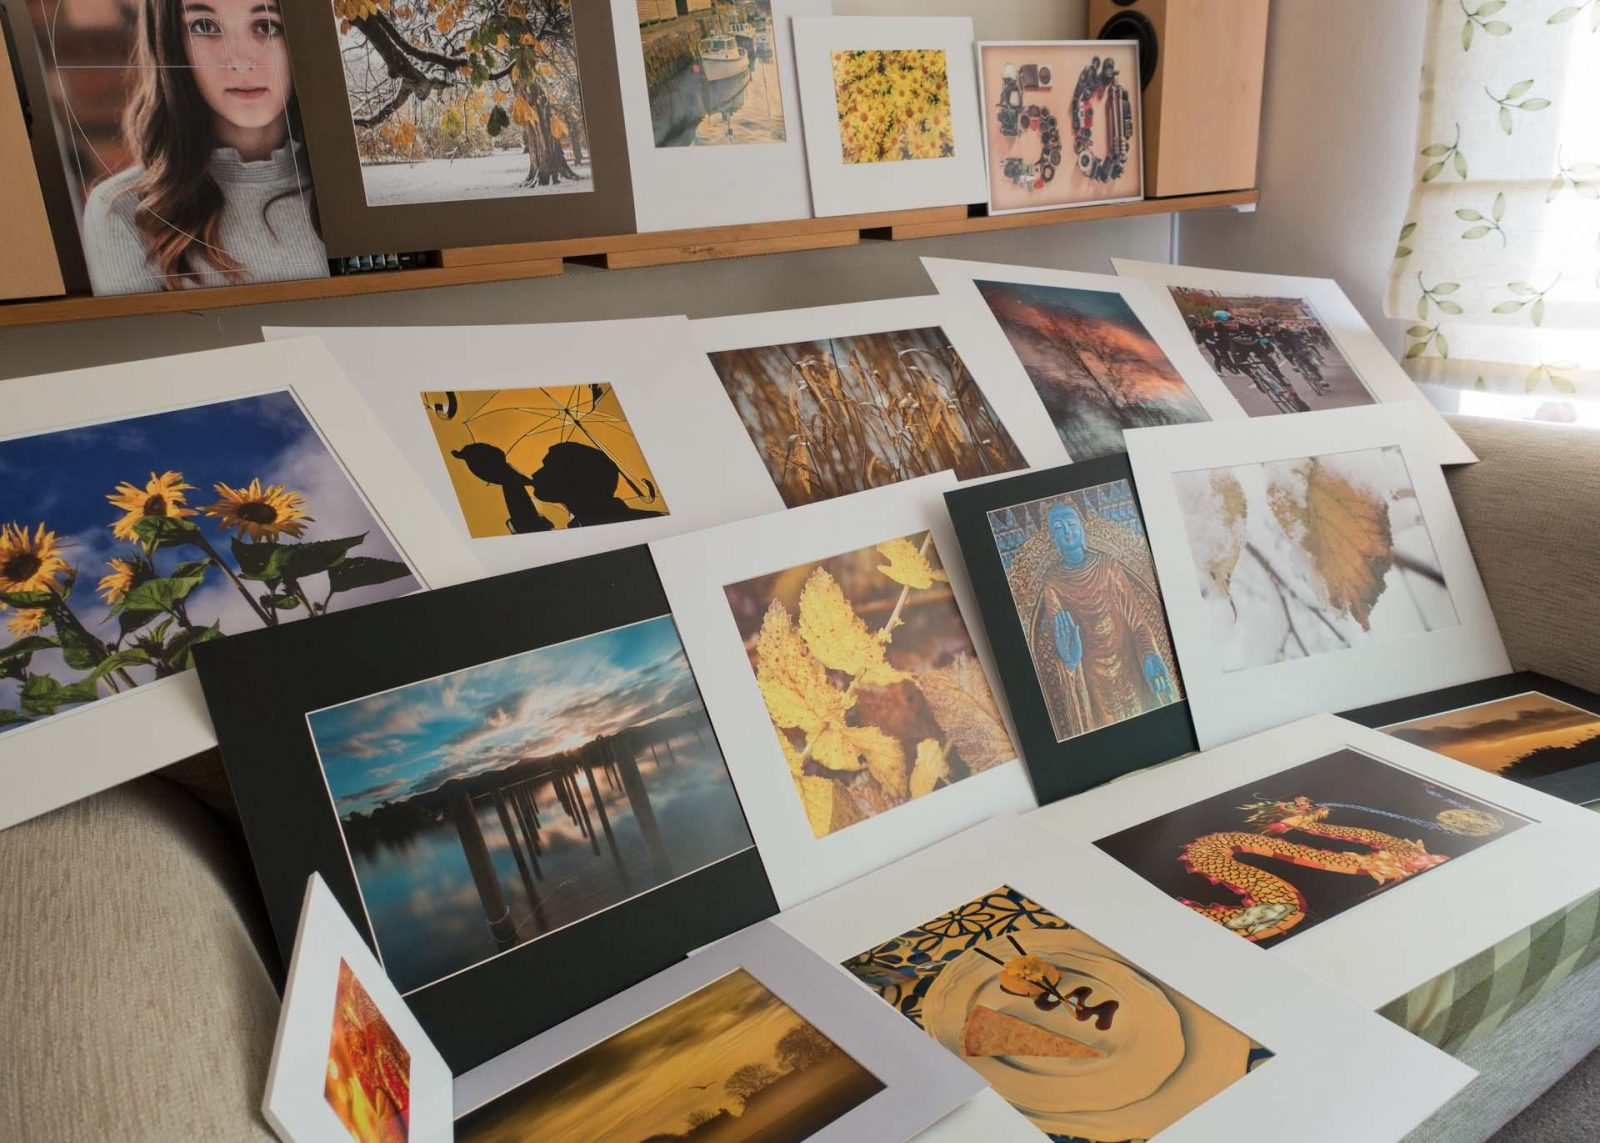 Find your niche as a photographer. There is no need to master every type of photography genre but use what inspires you and the local demand to specialize. Define and Master your Photography Niche on Falcondale Life blog. Image description: A variety of photo prints.